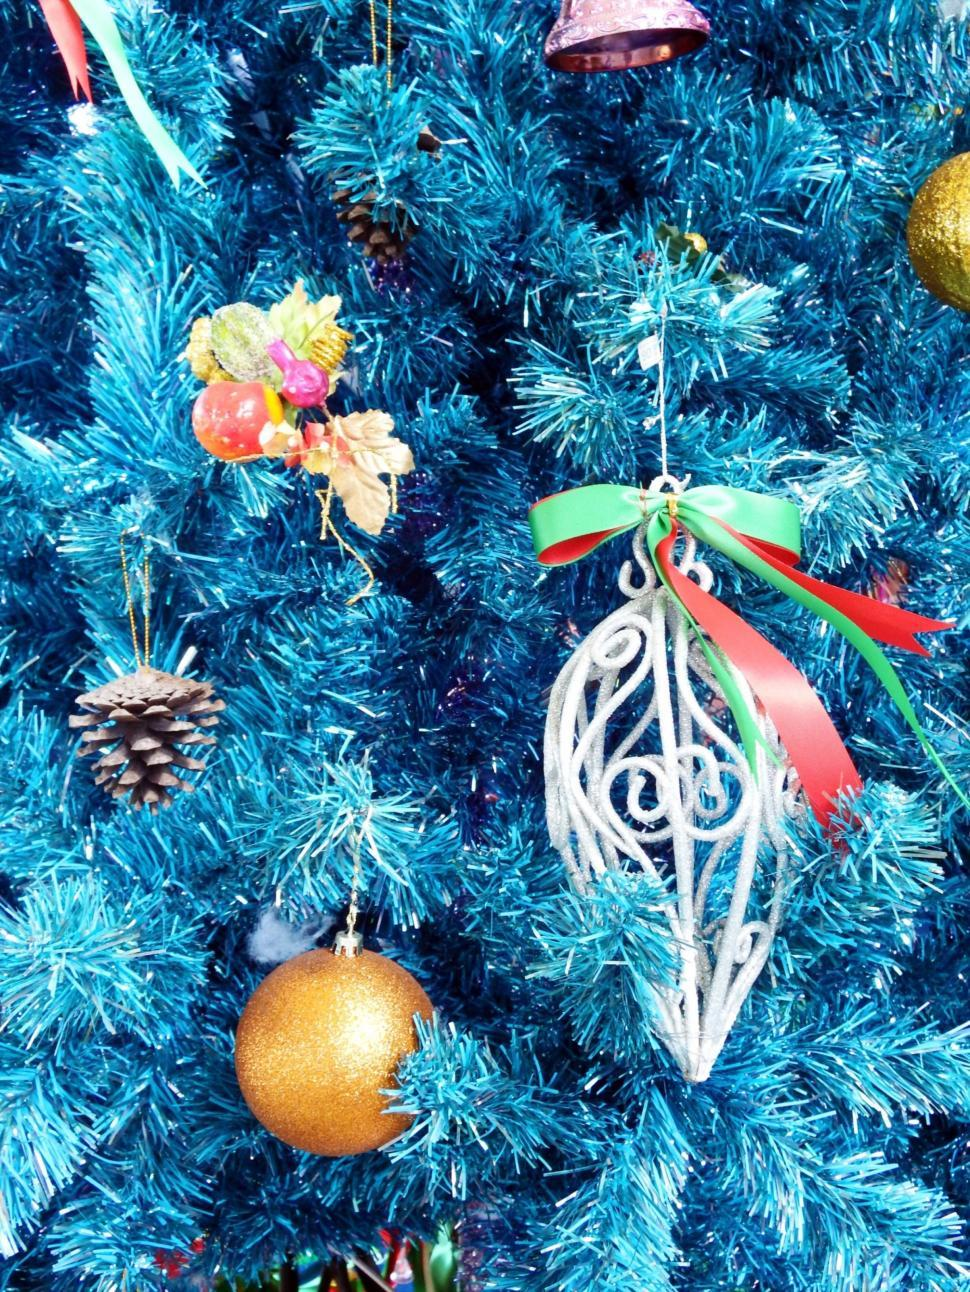 Download Free Stock HD Photo of Christmas tree decorations  Online